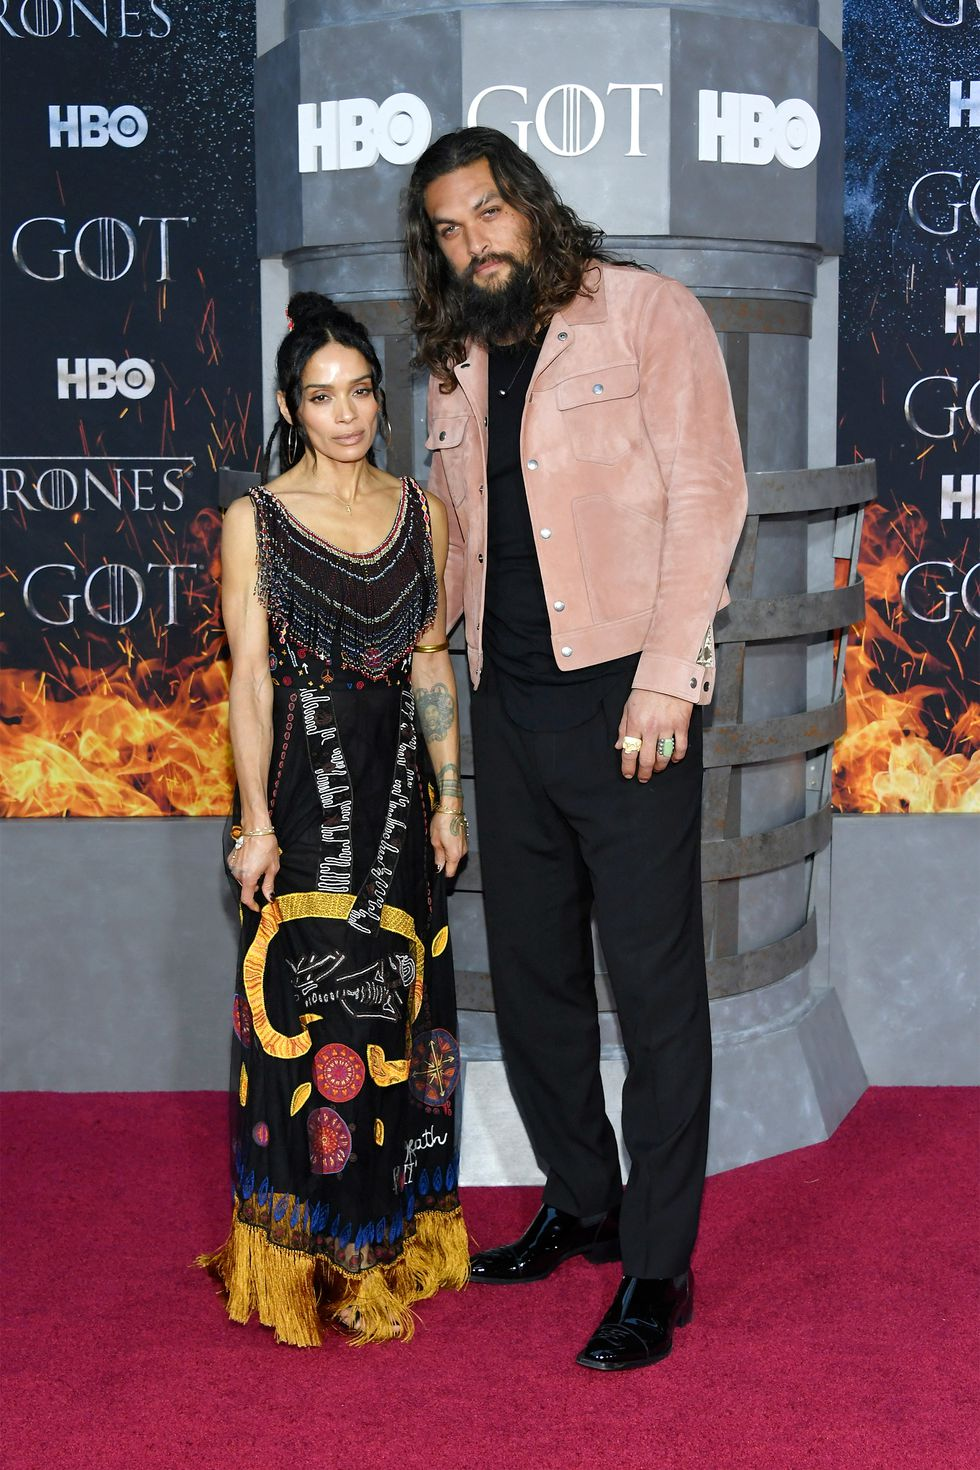 hbz-got-premiere-lisa-bonet-and-jason-momoa-1-1554334659.jpg